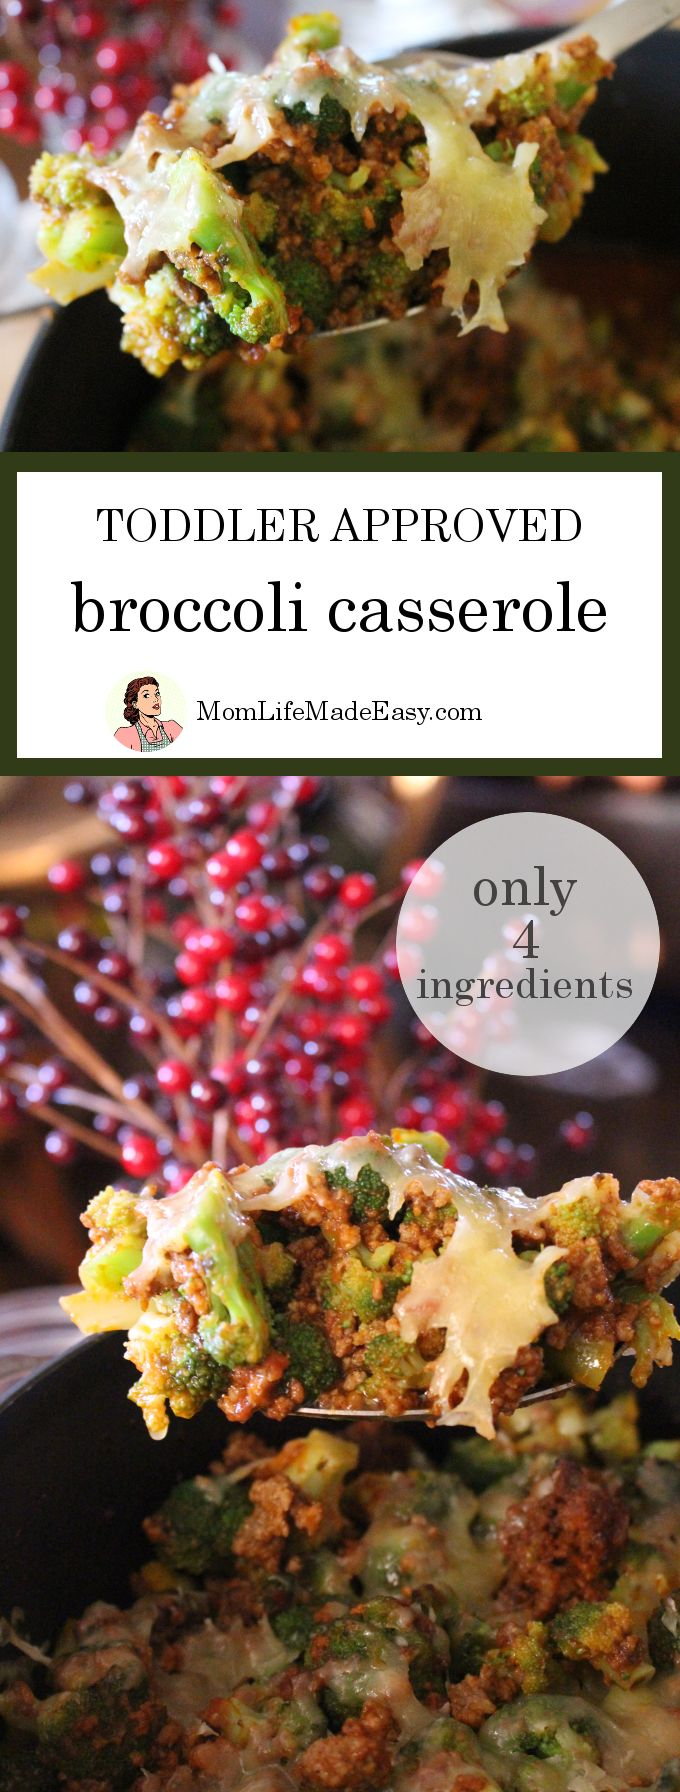 Toddler Approved Broccoli Casserole